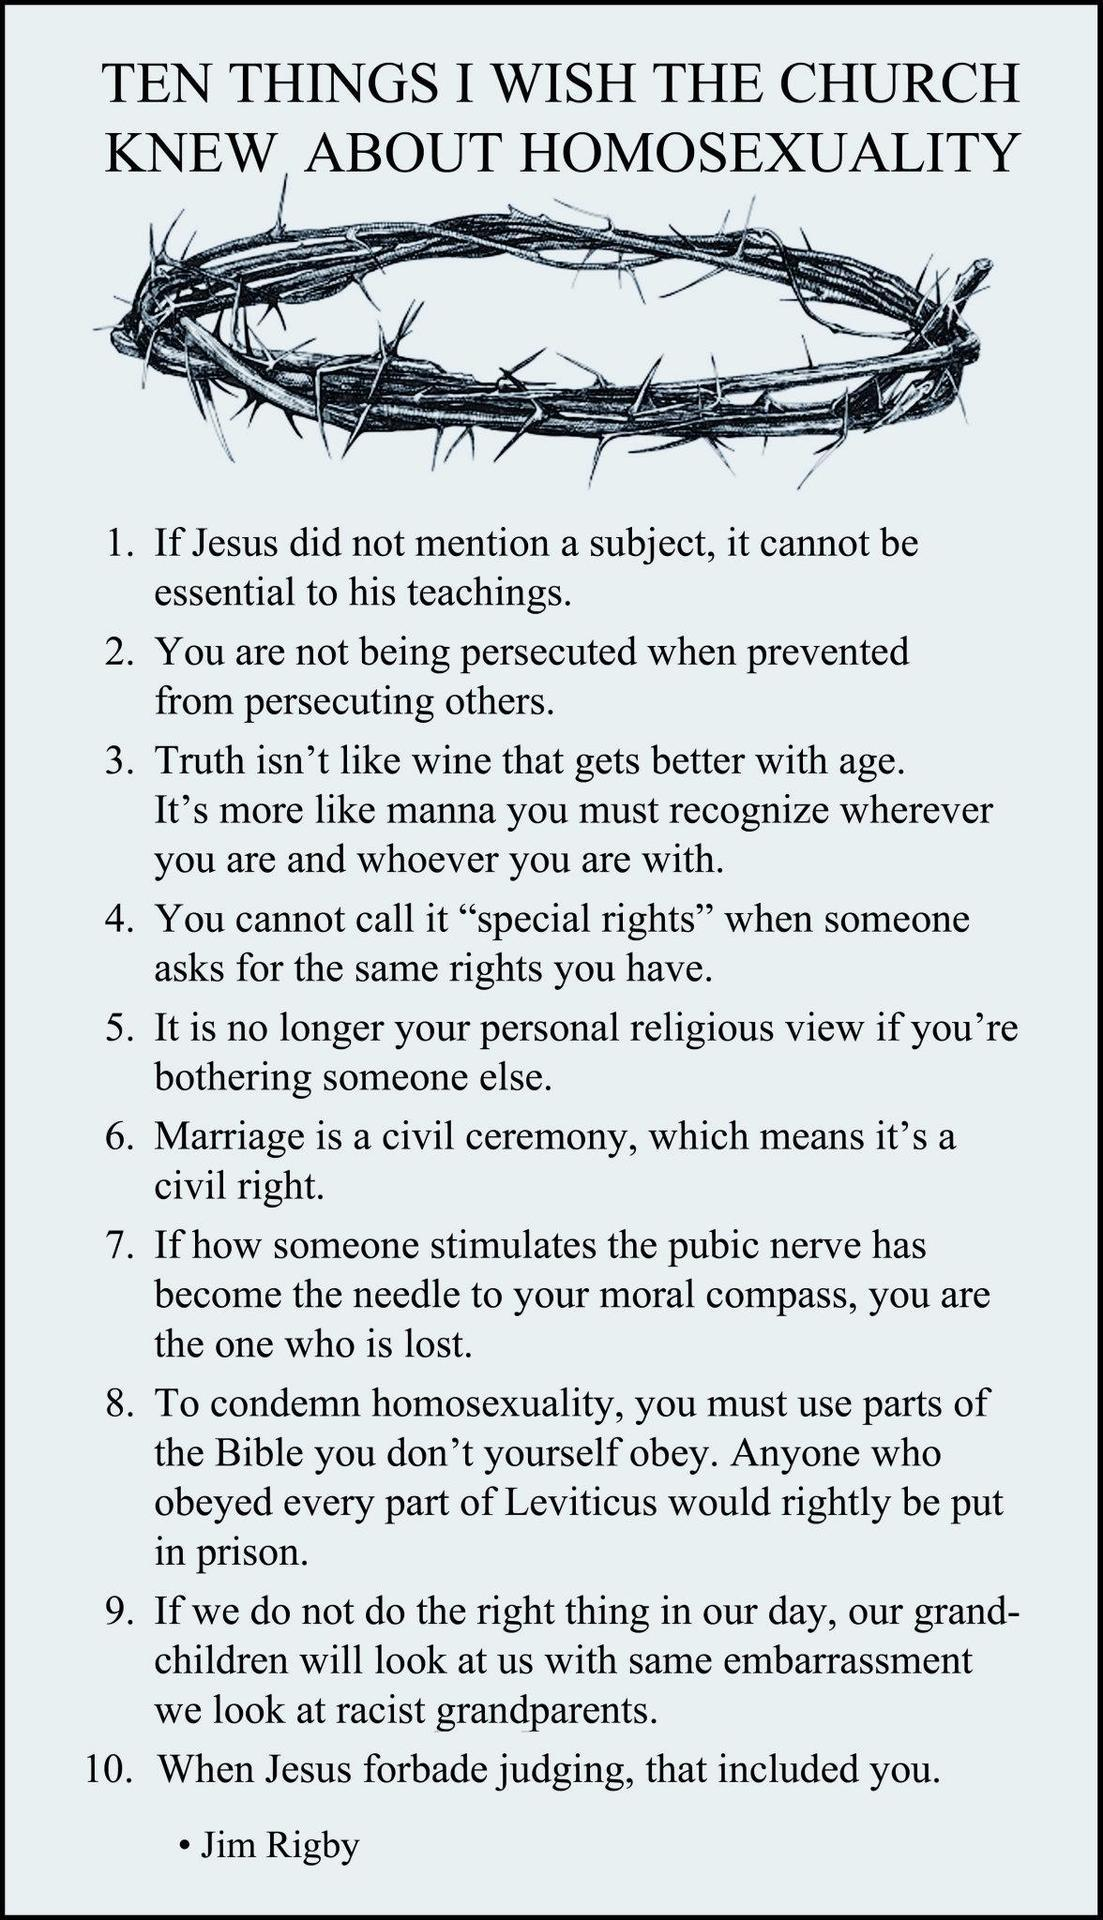 10 Things I wish the Church knew about Homosexuality